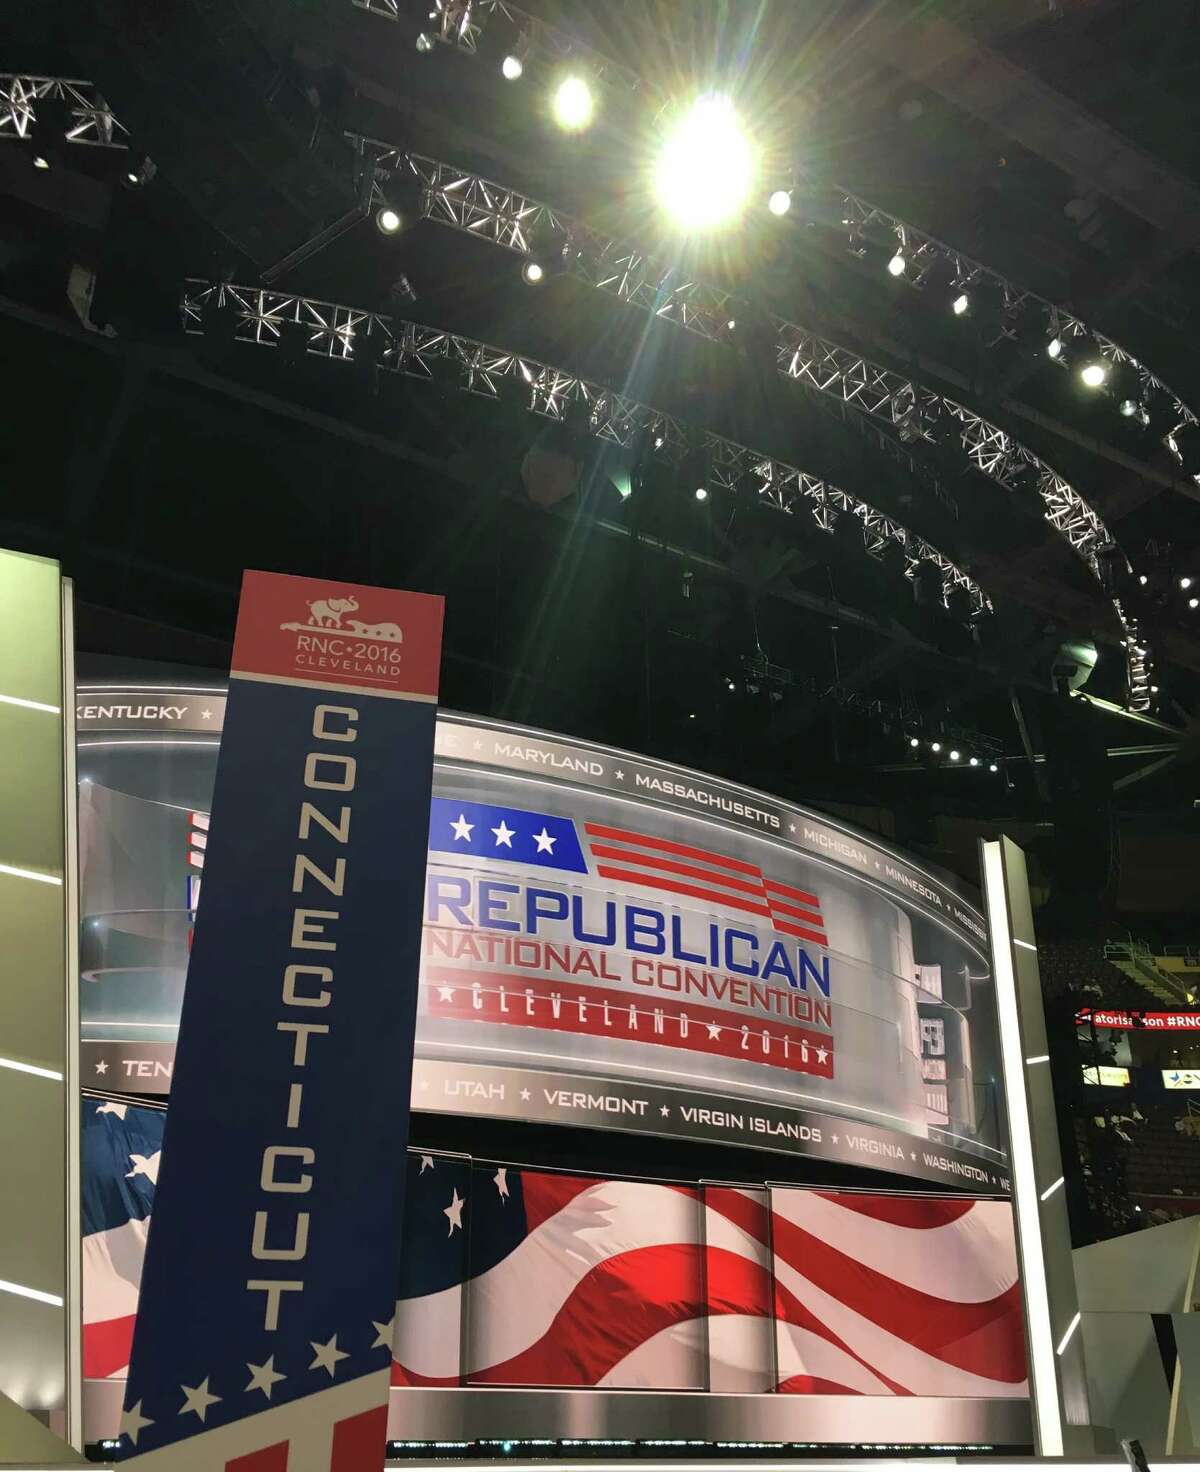 Connecticut's GOP delegation is positioned at the front of the floor at the Republican National Convention in Cleveland.